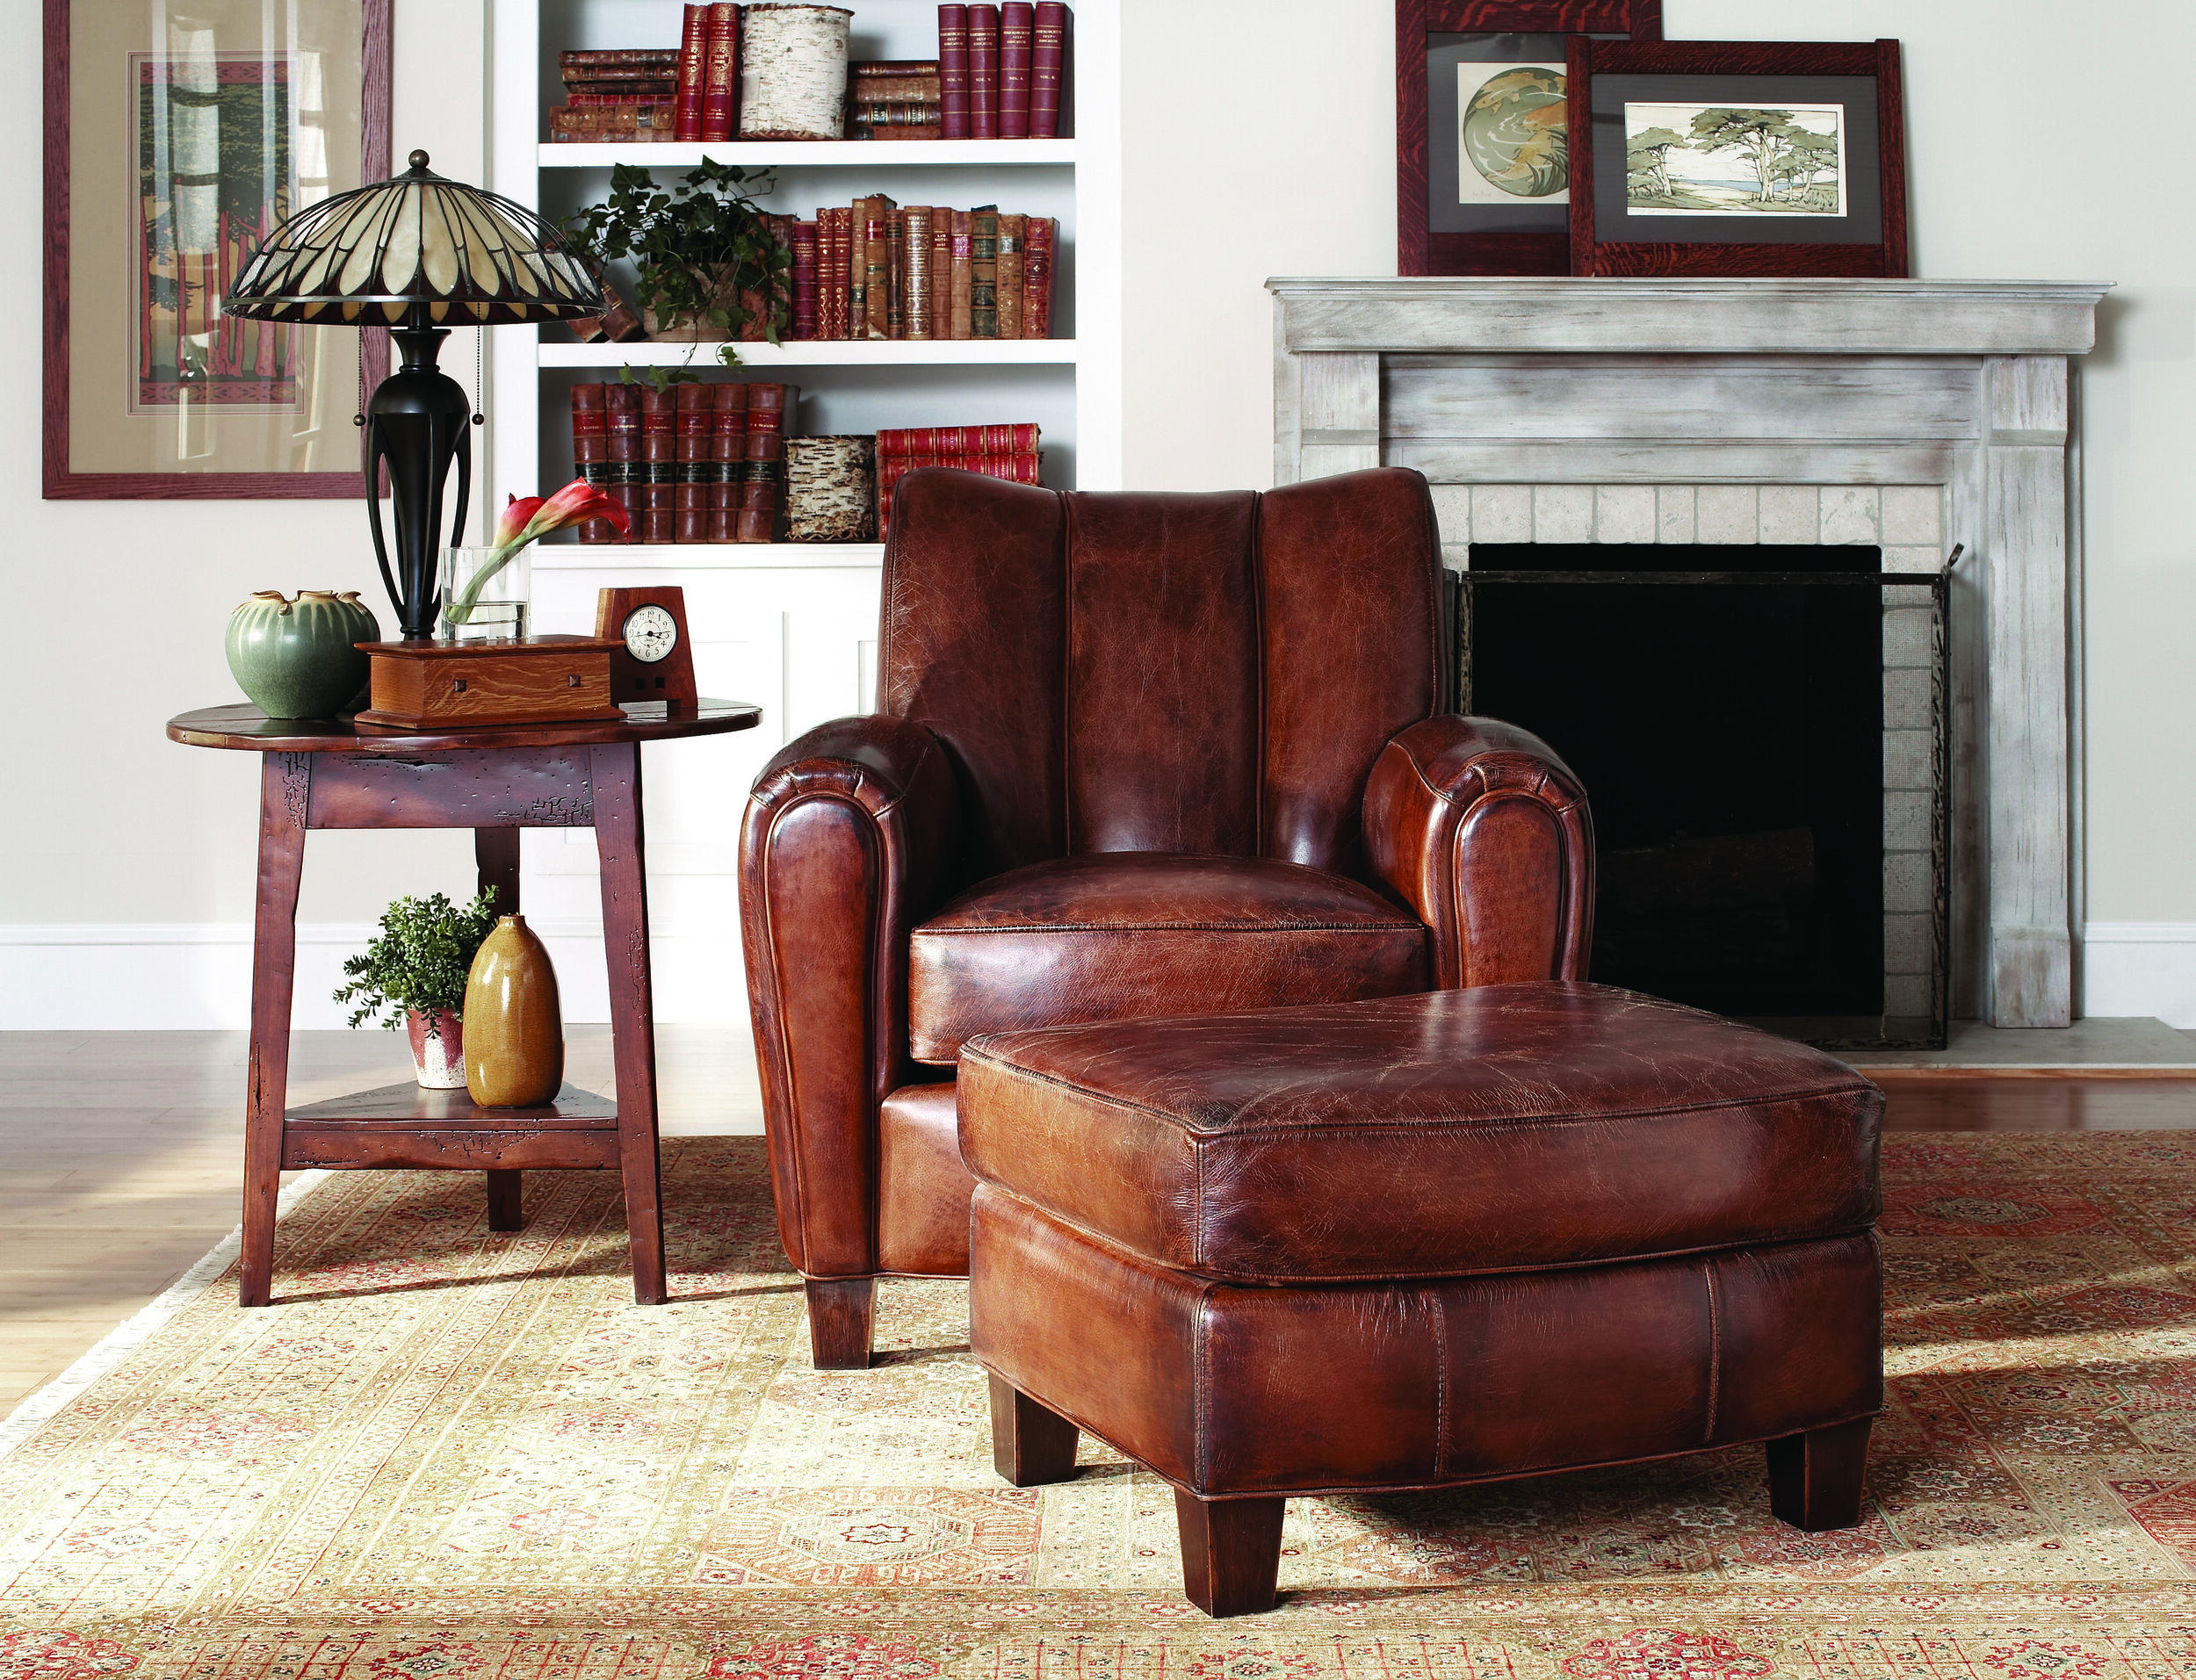 stickley RS709_CL_ParisCHOT_na_mc_CL-8026-CH-hpr.jpg